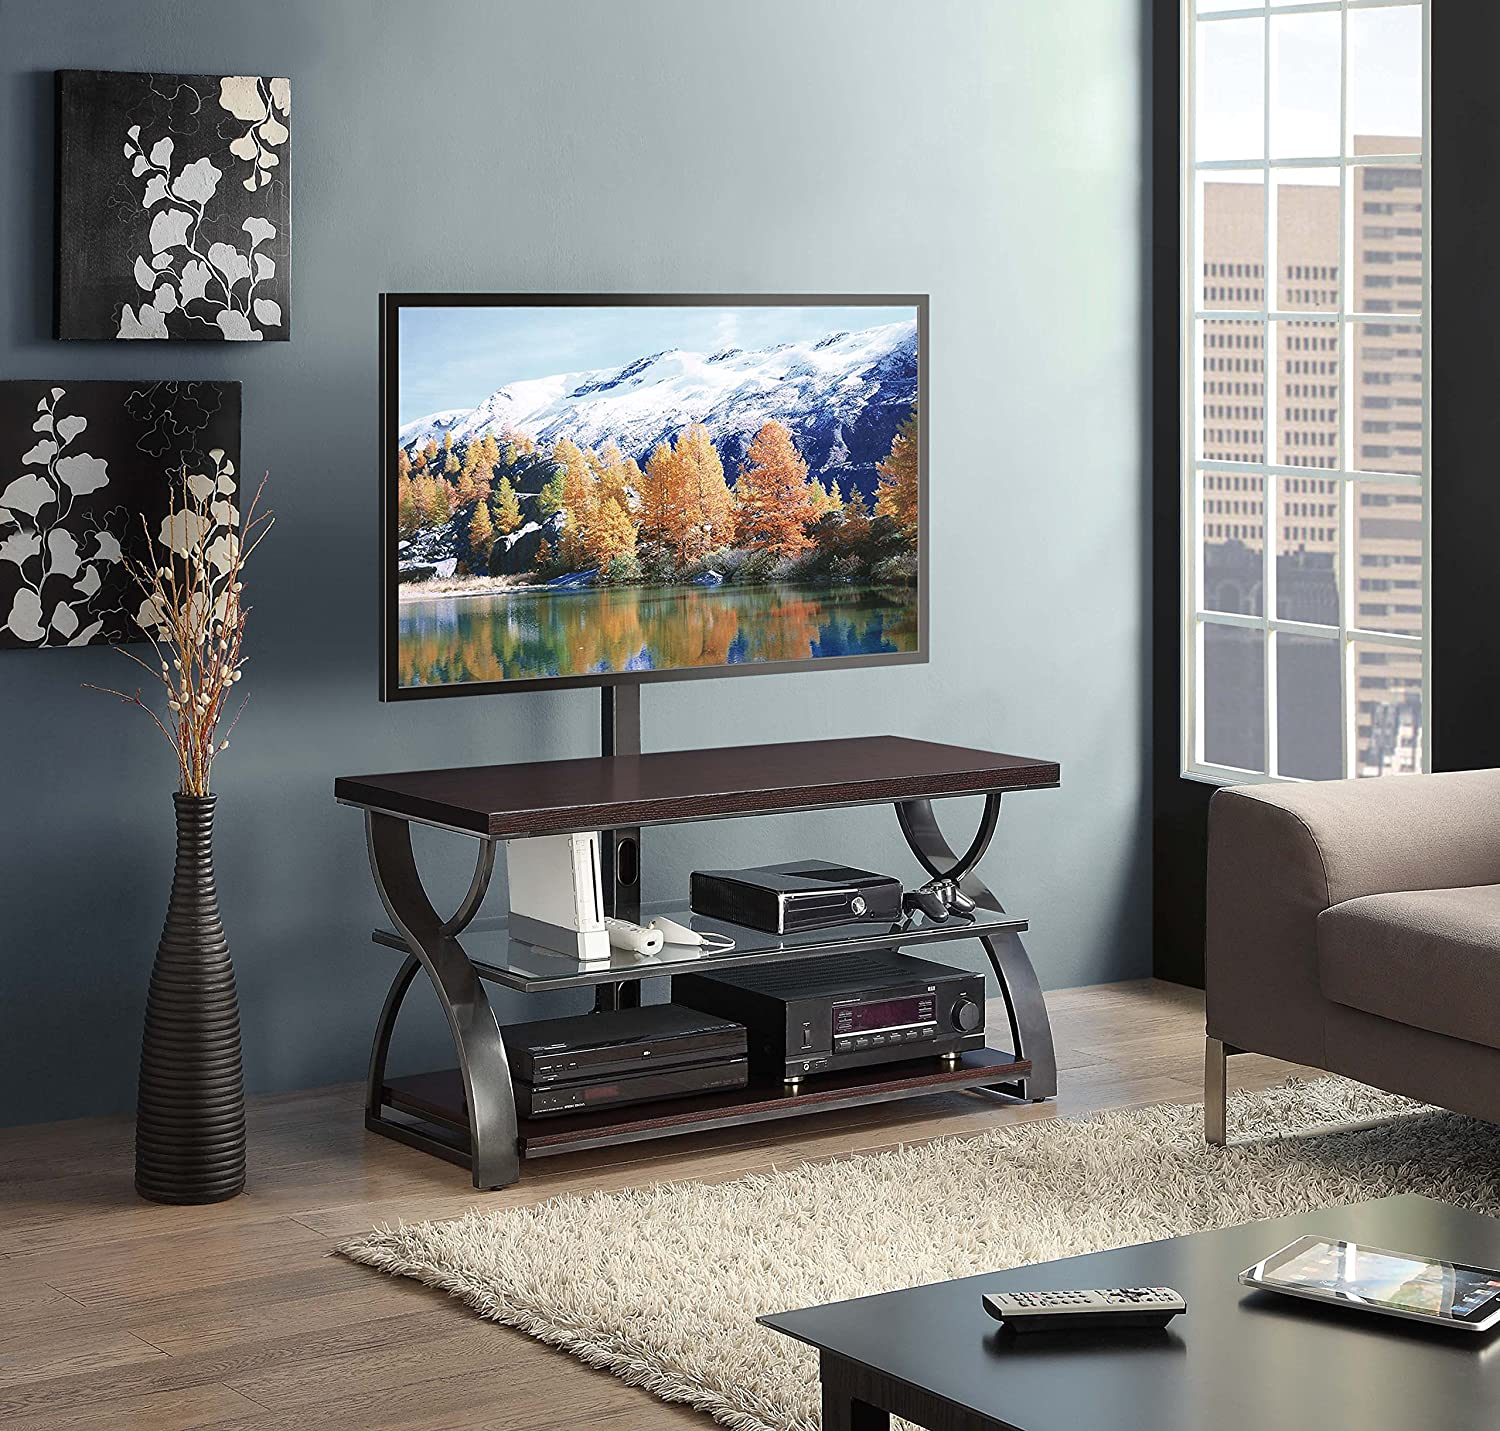 The 5 Best TV Stands In 2018: Reviews & Buying Guide 12